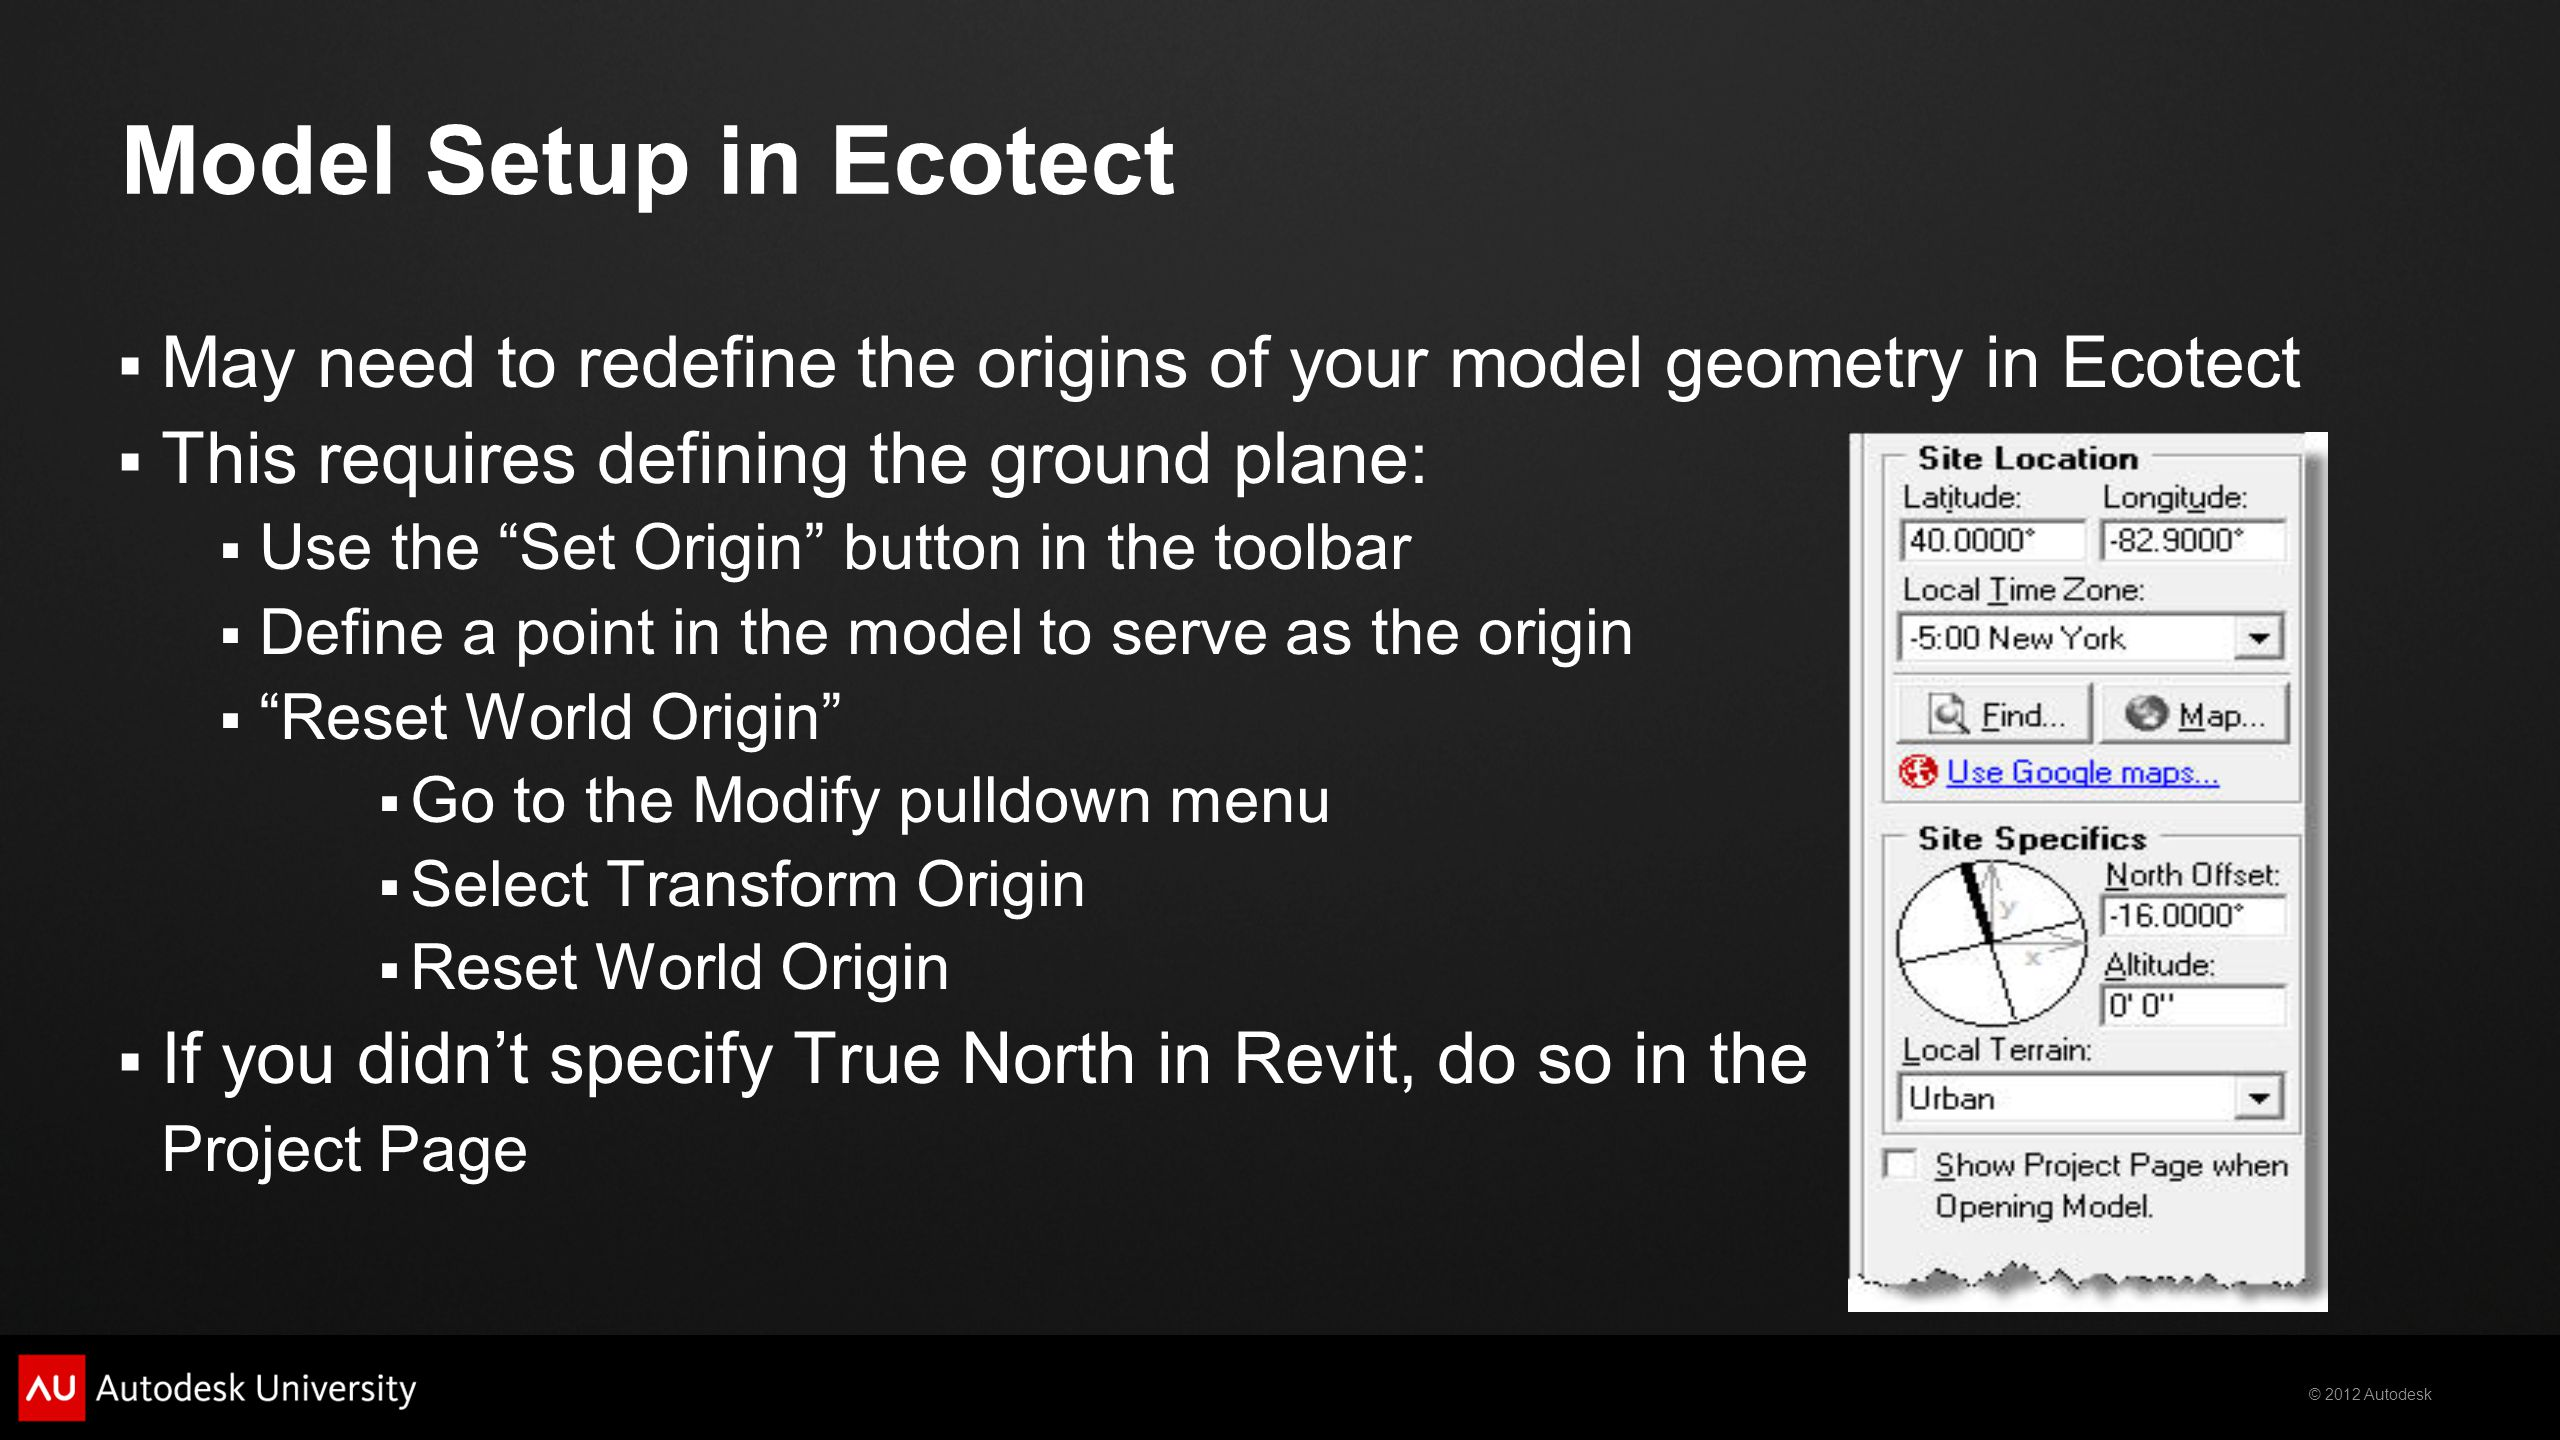 Model Setup in Ecotect May need to redefine the origins of your model geometry in Ecotect. This requires defining the ground plane: